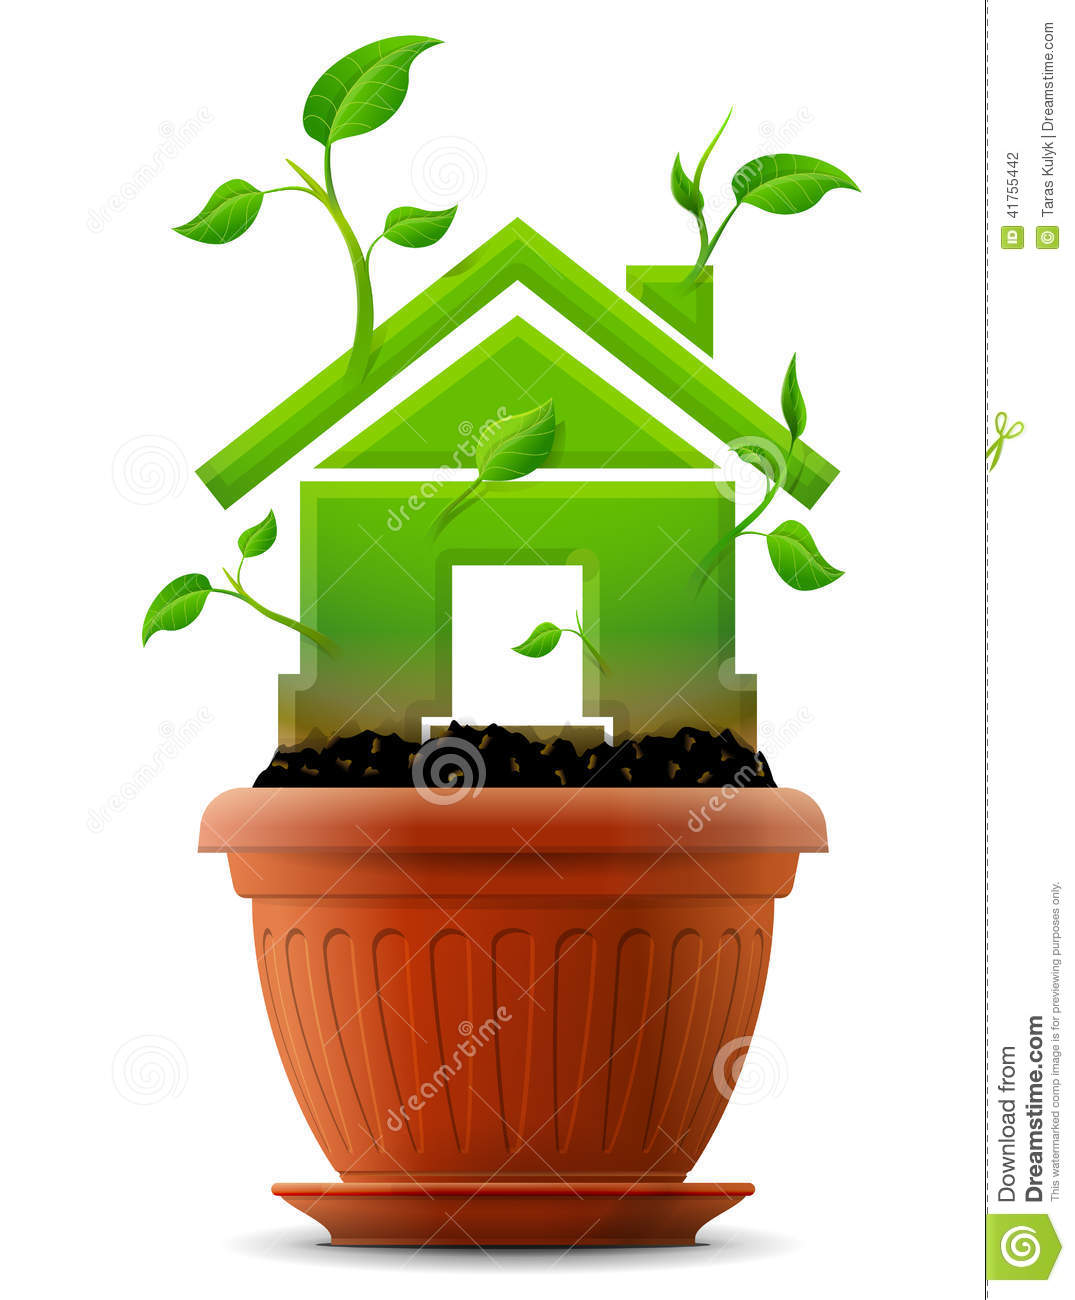 growing house symbol like plant with leaves in flower pot stock